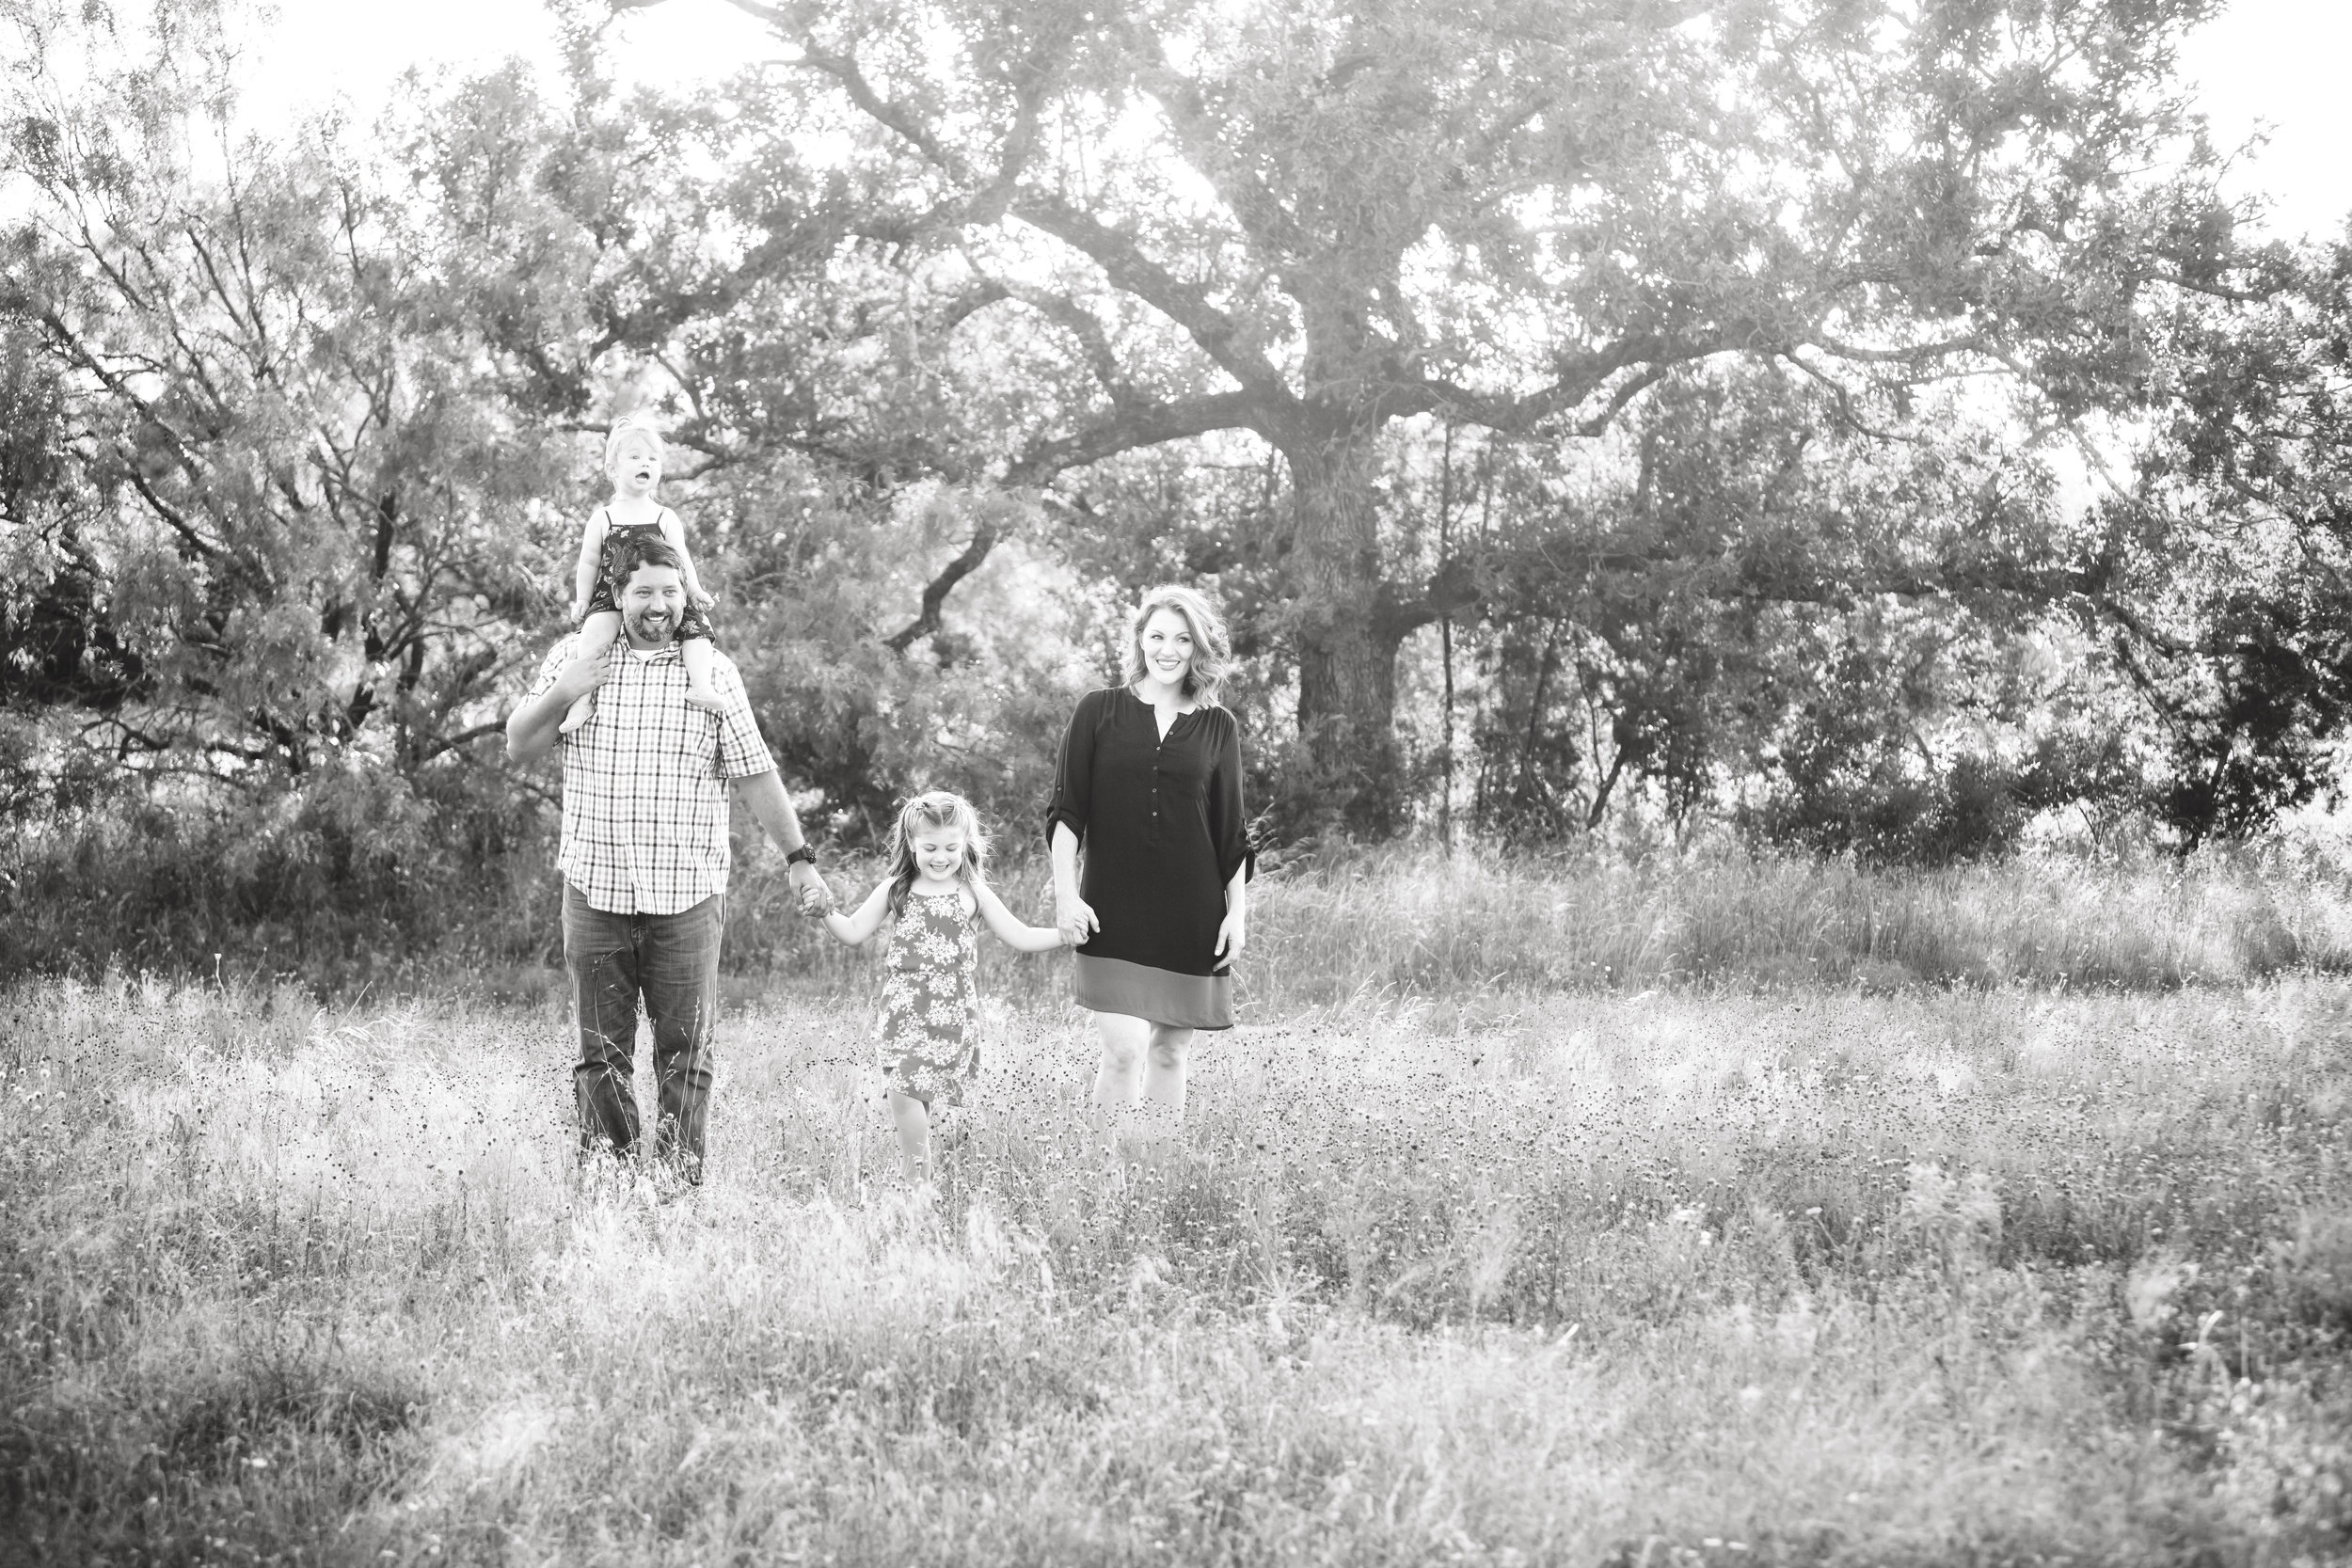 Marble_Falls_Family_Photographer_Jenna_Petty_05.jpg